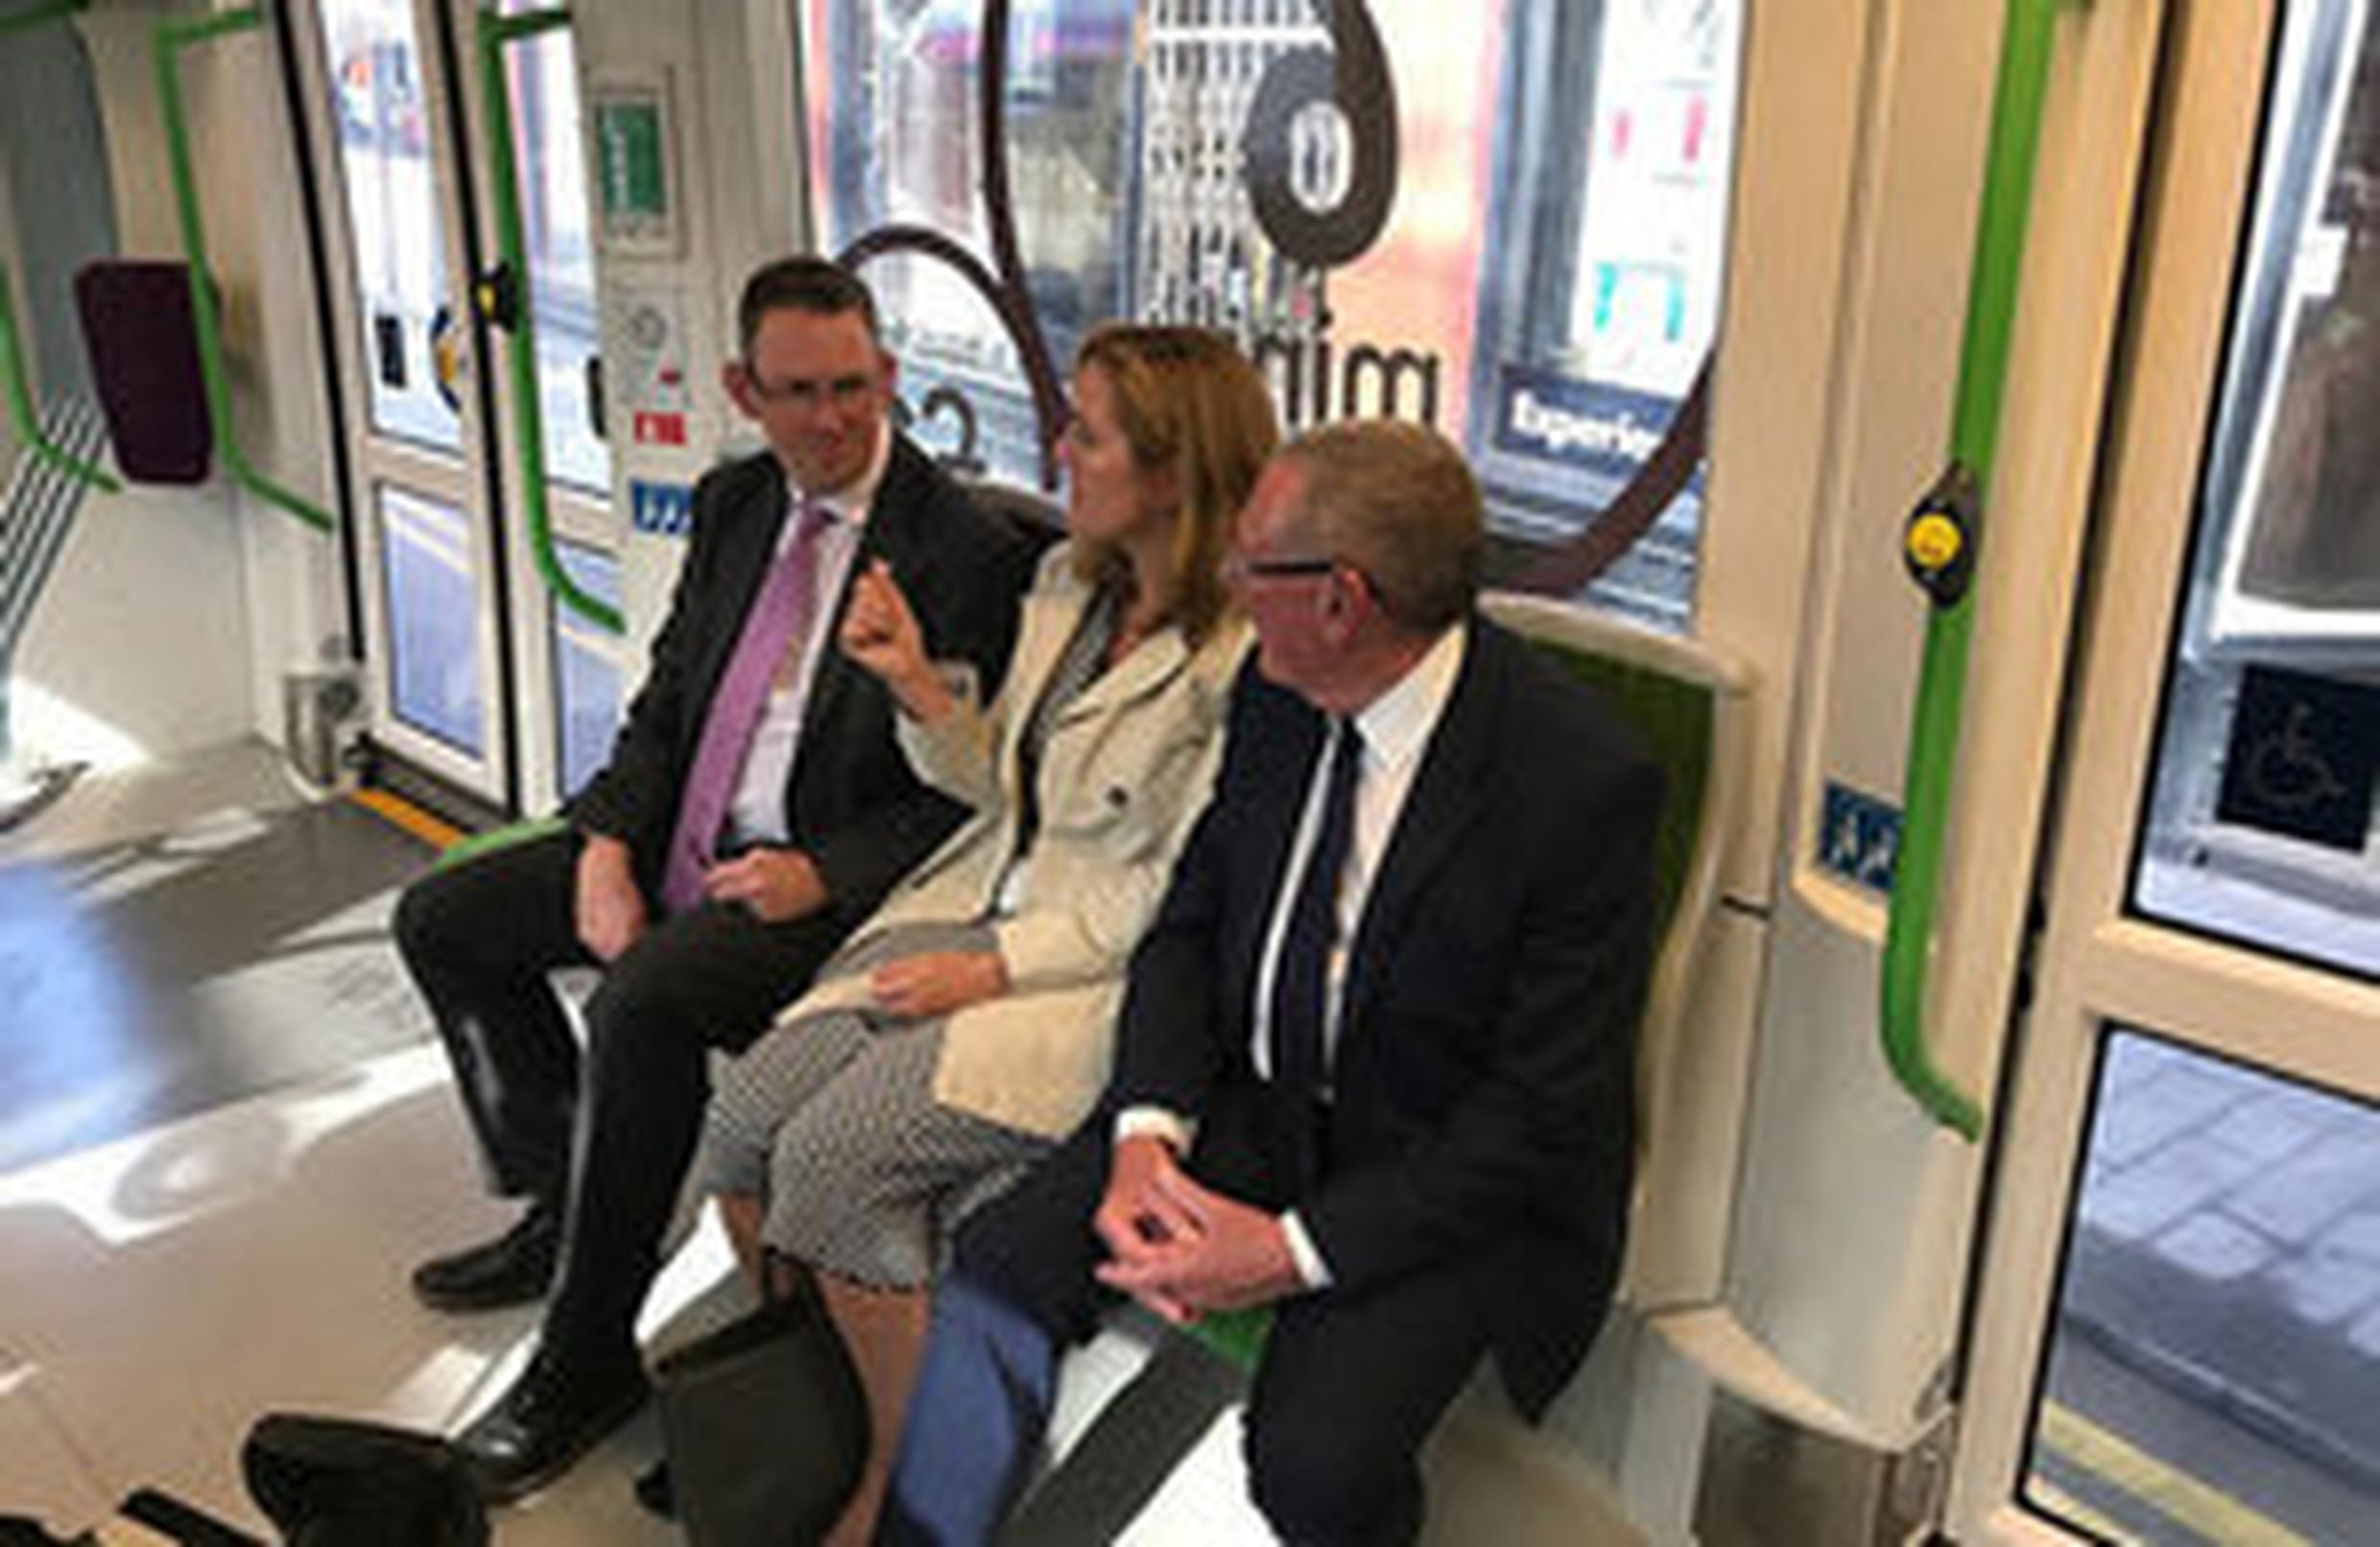 Transport minister Paul Maynard with Laura Shoaf, managing director of Transport for the West Midlands (TfWM) and Cllr Bob Sleigh OBE, deputy mayor of the West Midlands